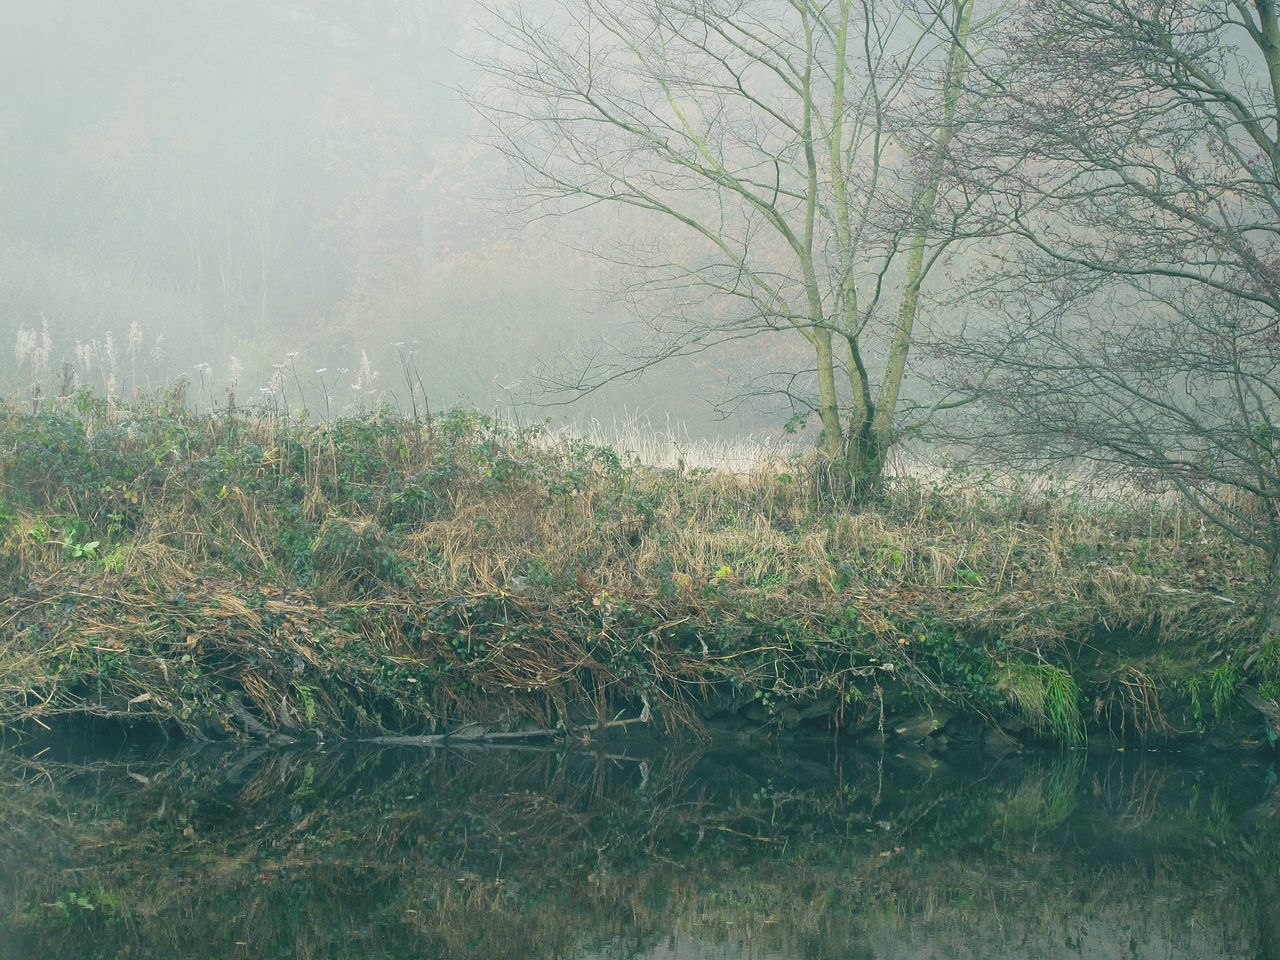 Foggymornings Frosty Days EyeEmbestshots Fineartphotography WoodLand Reflection River Bank  Beauty In Nature Bare Tree Outdoors Change Woodlands Valleys Autumnbeauty Autumn Leaves EnchantedForest Tranquil Scene Non-urban Scene Cold Temperature Tree Trunk Winter Is Coming No People Water Scenics Landscape Rural Scene